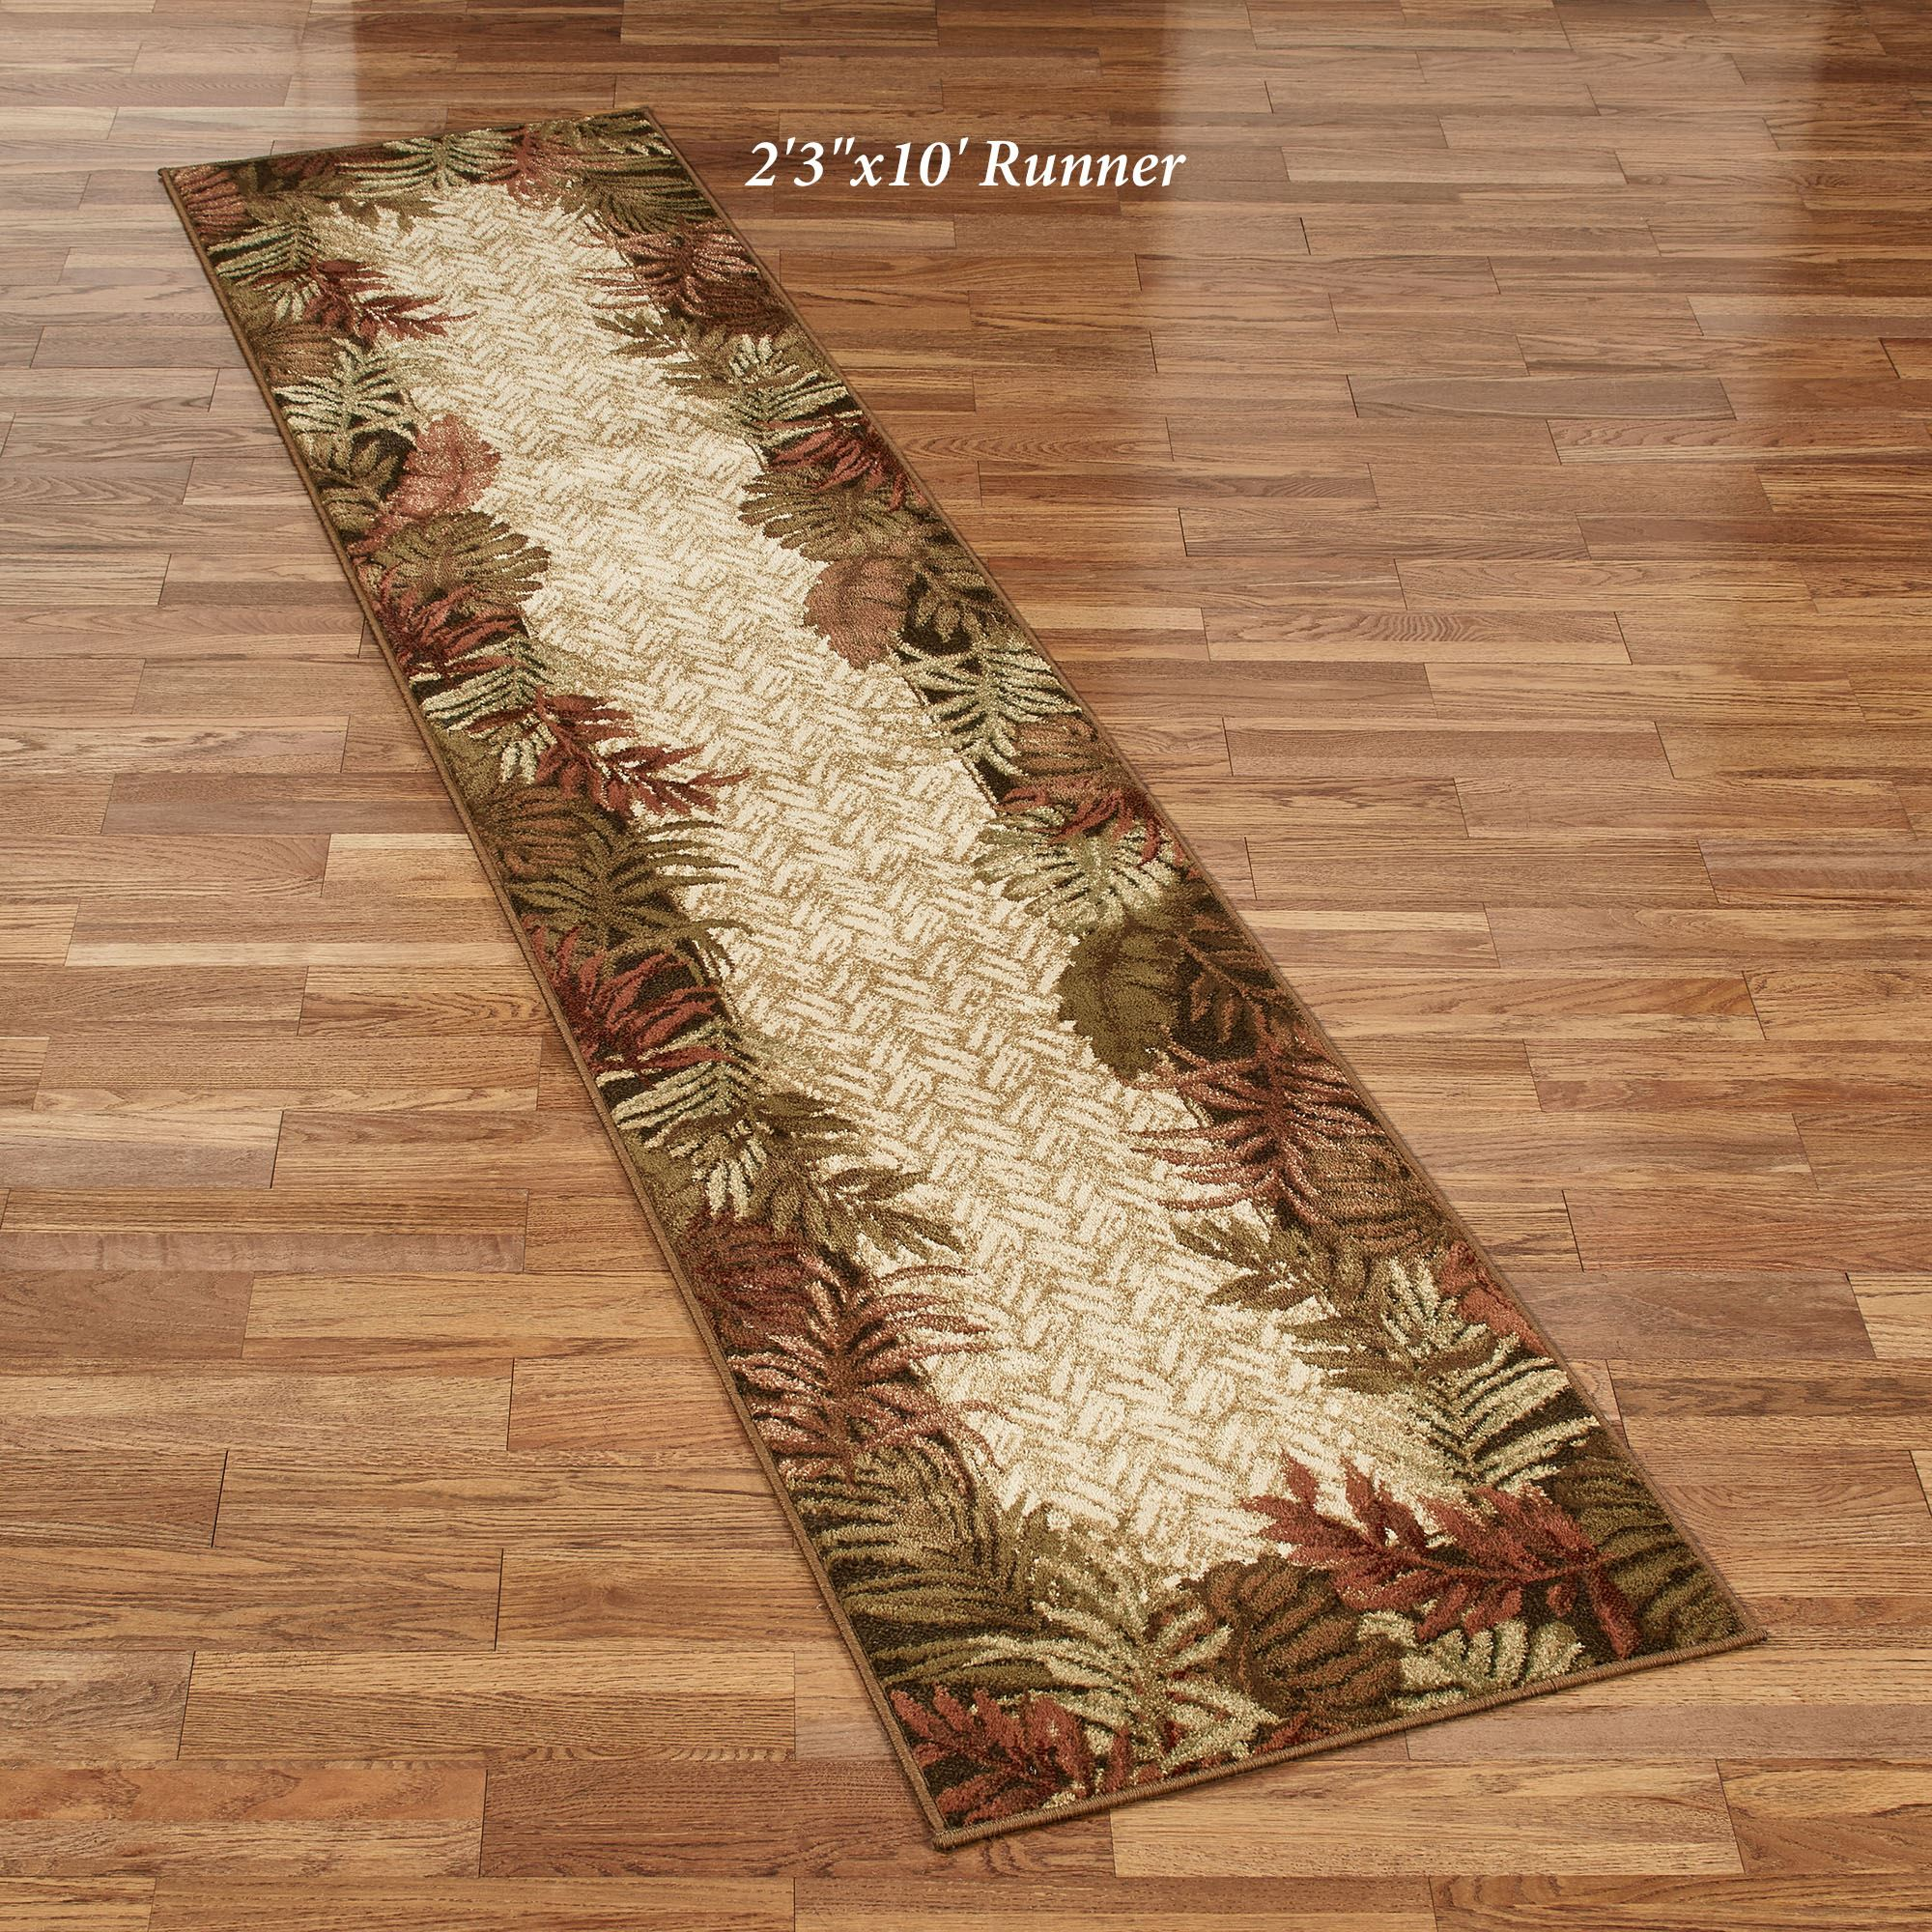 to mat mats jute wikihow straw with a how clean rug pictures version step steps